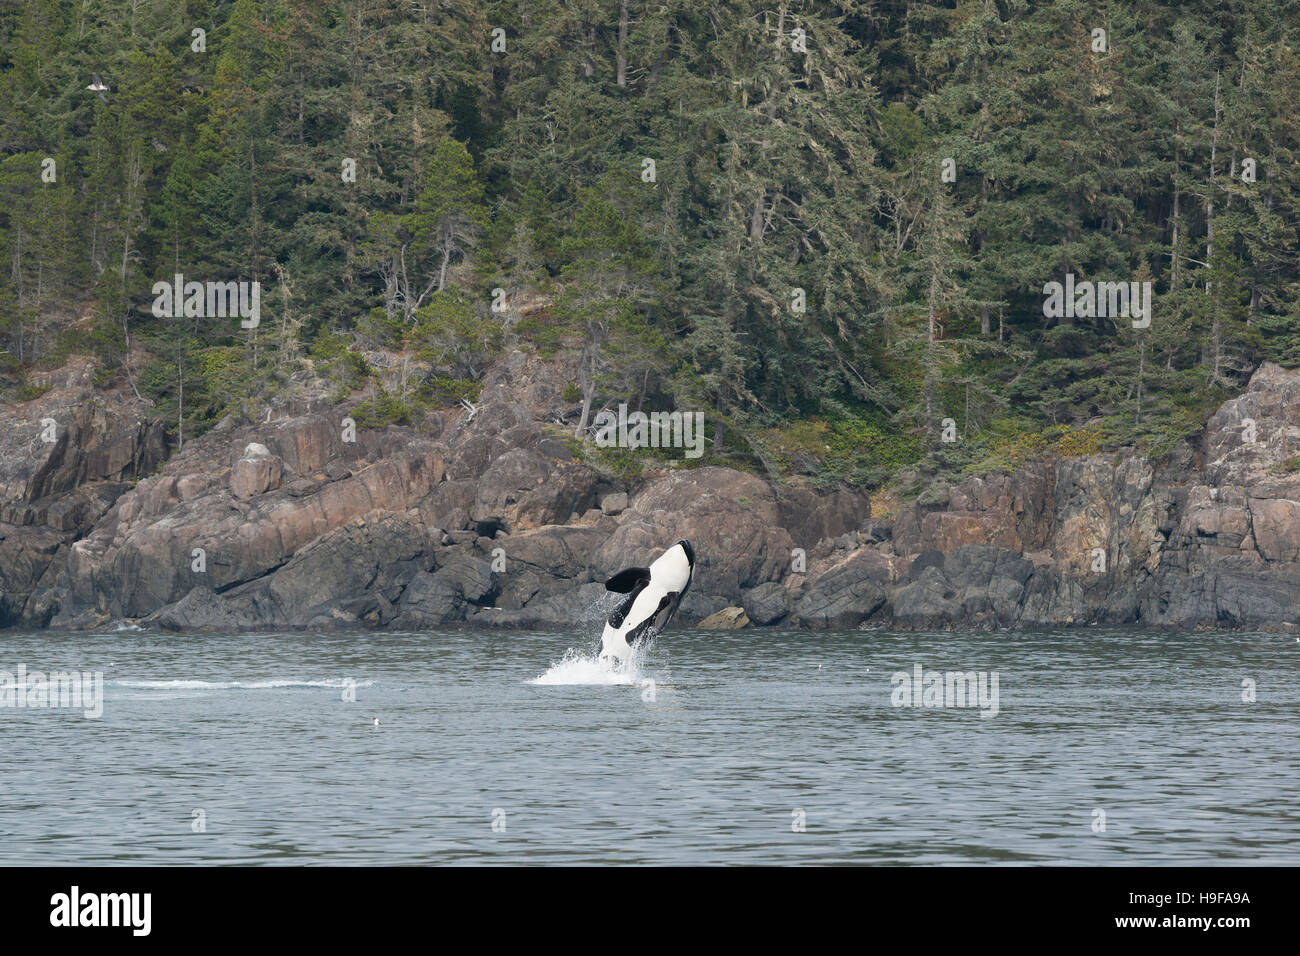 southern resident orca, or killer whale, Orcinus orca, breaching, Vancouver Island, British Columbia, Canada - Stock Image